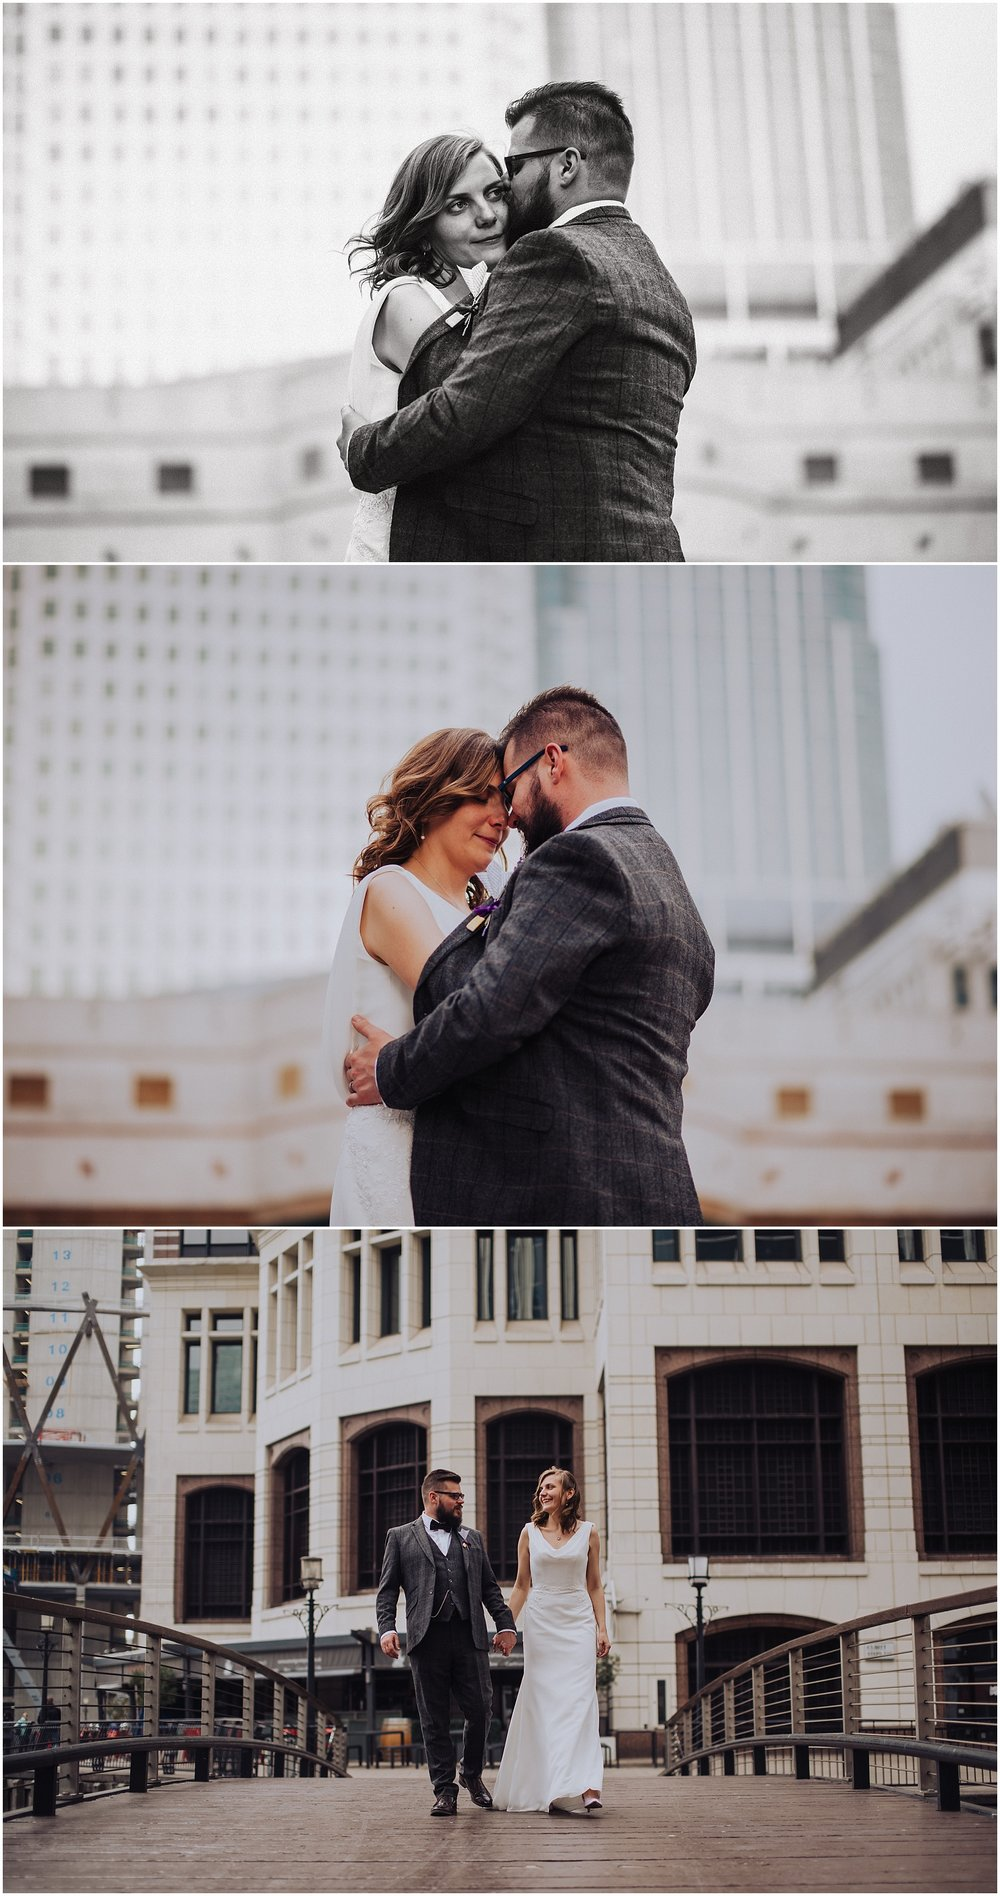 wedding photographer at canary wharf in london